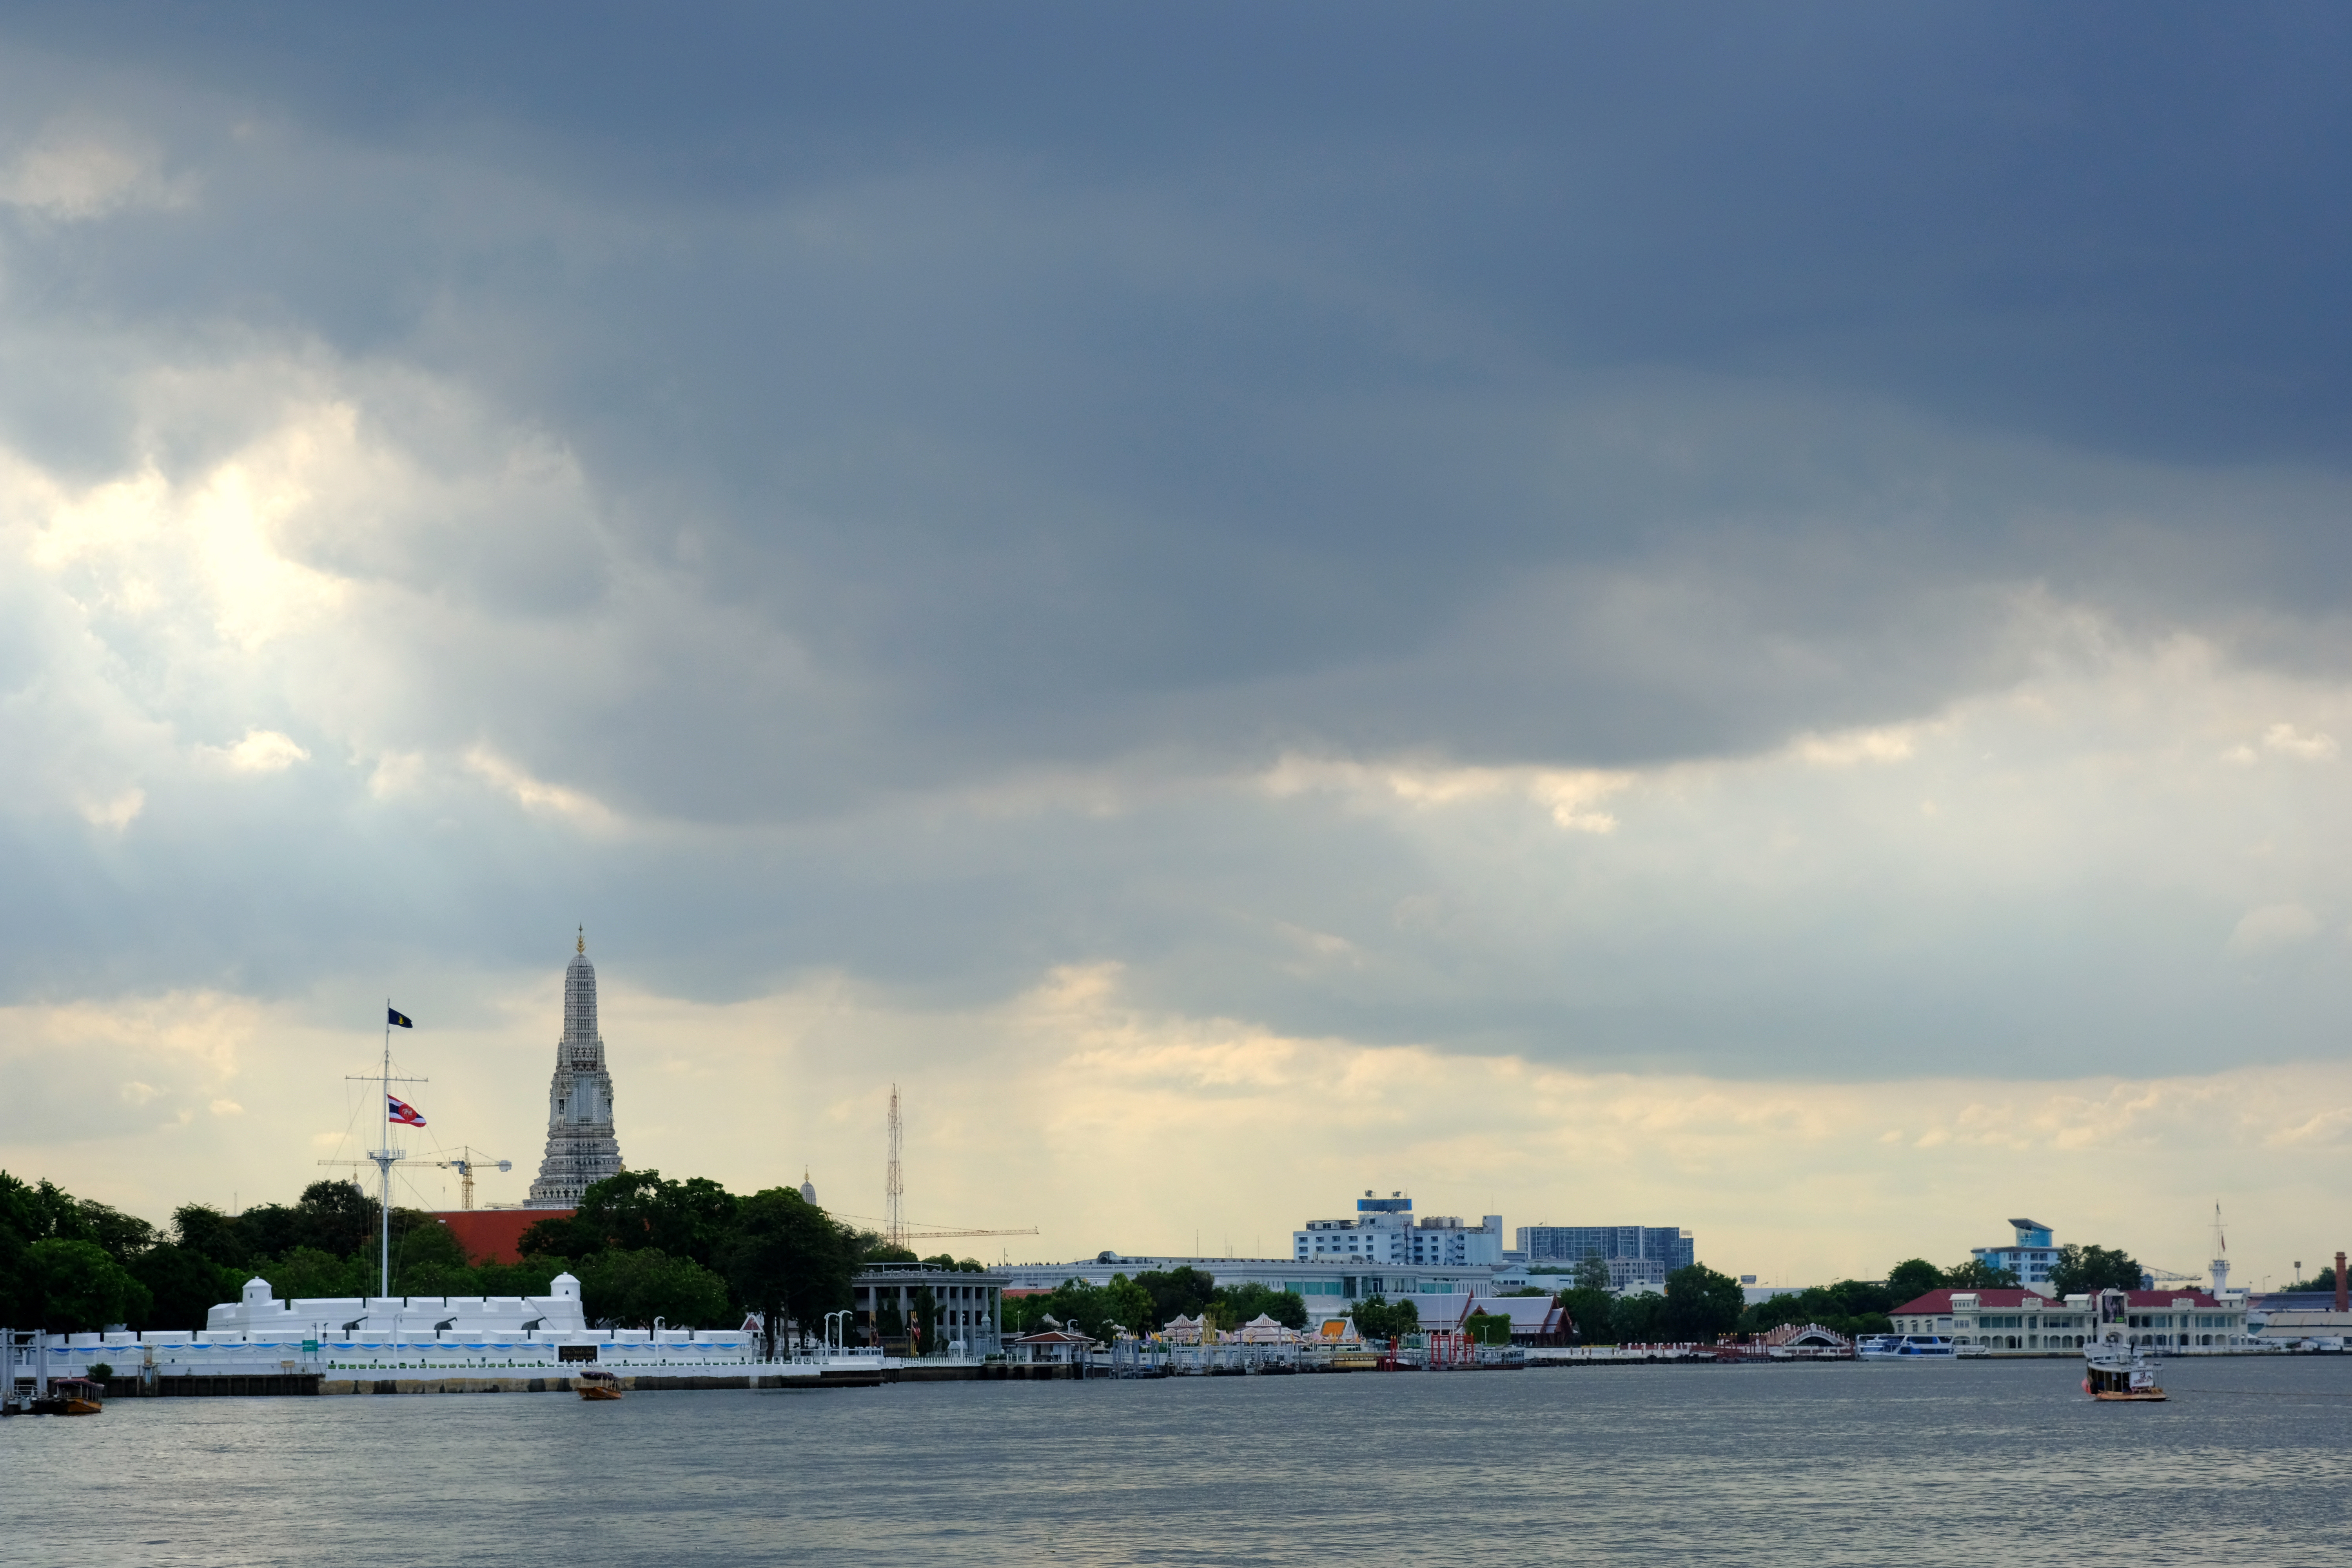 An August sky over the Chao Phraya river with Wat Arun in the distance.